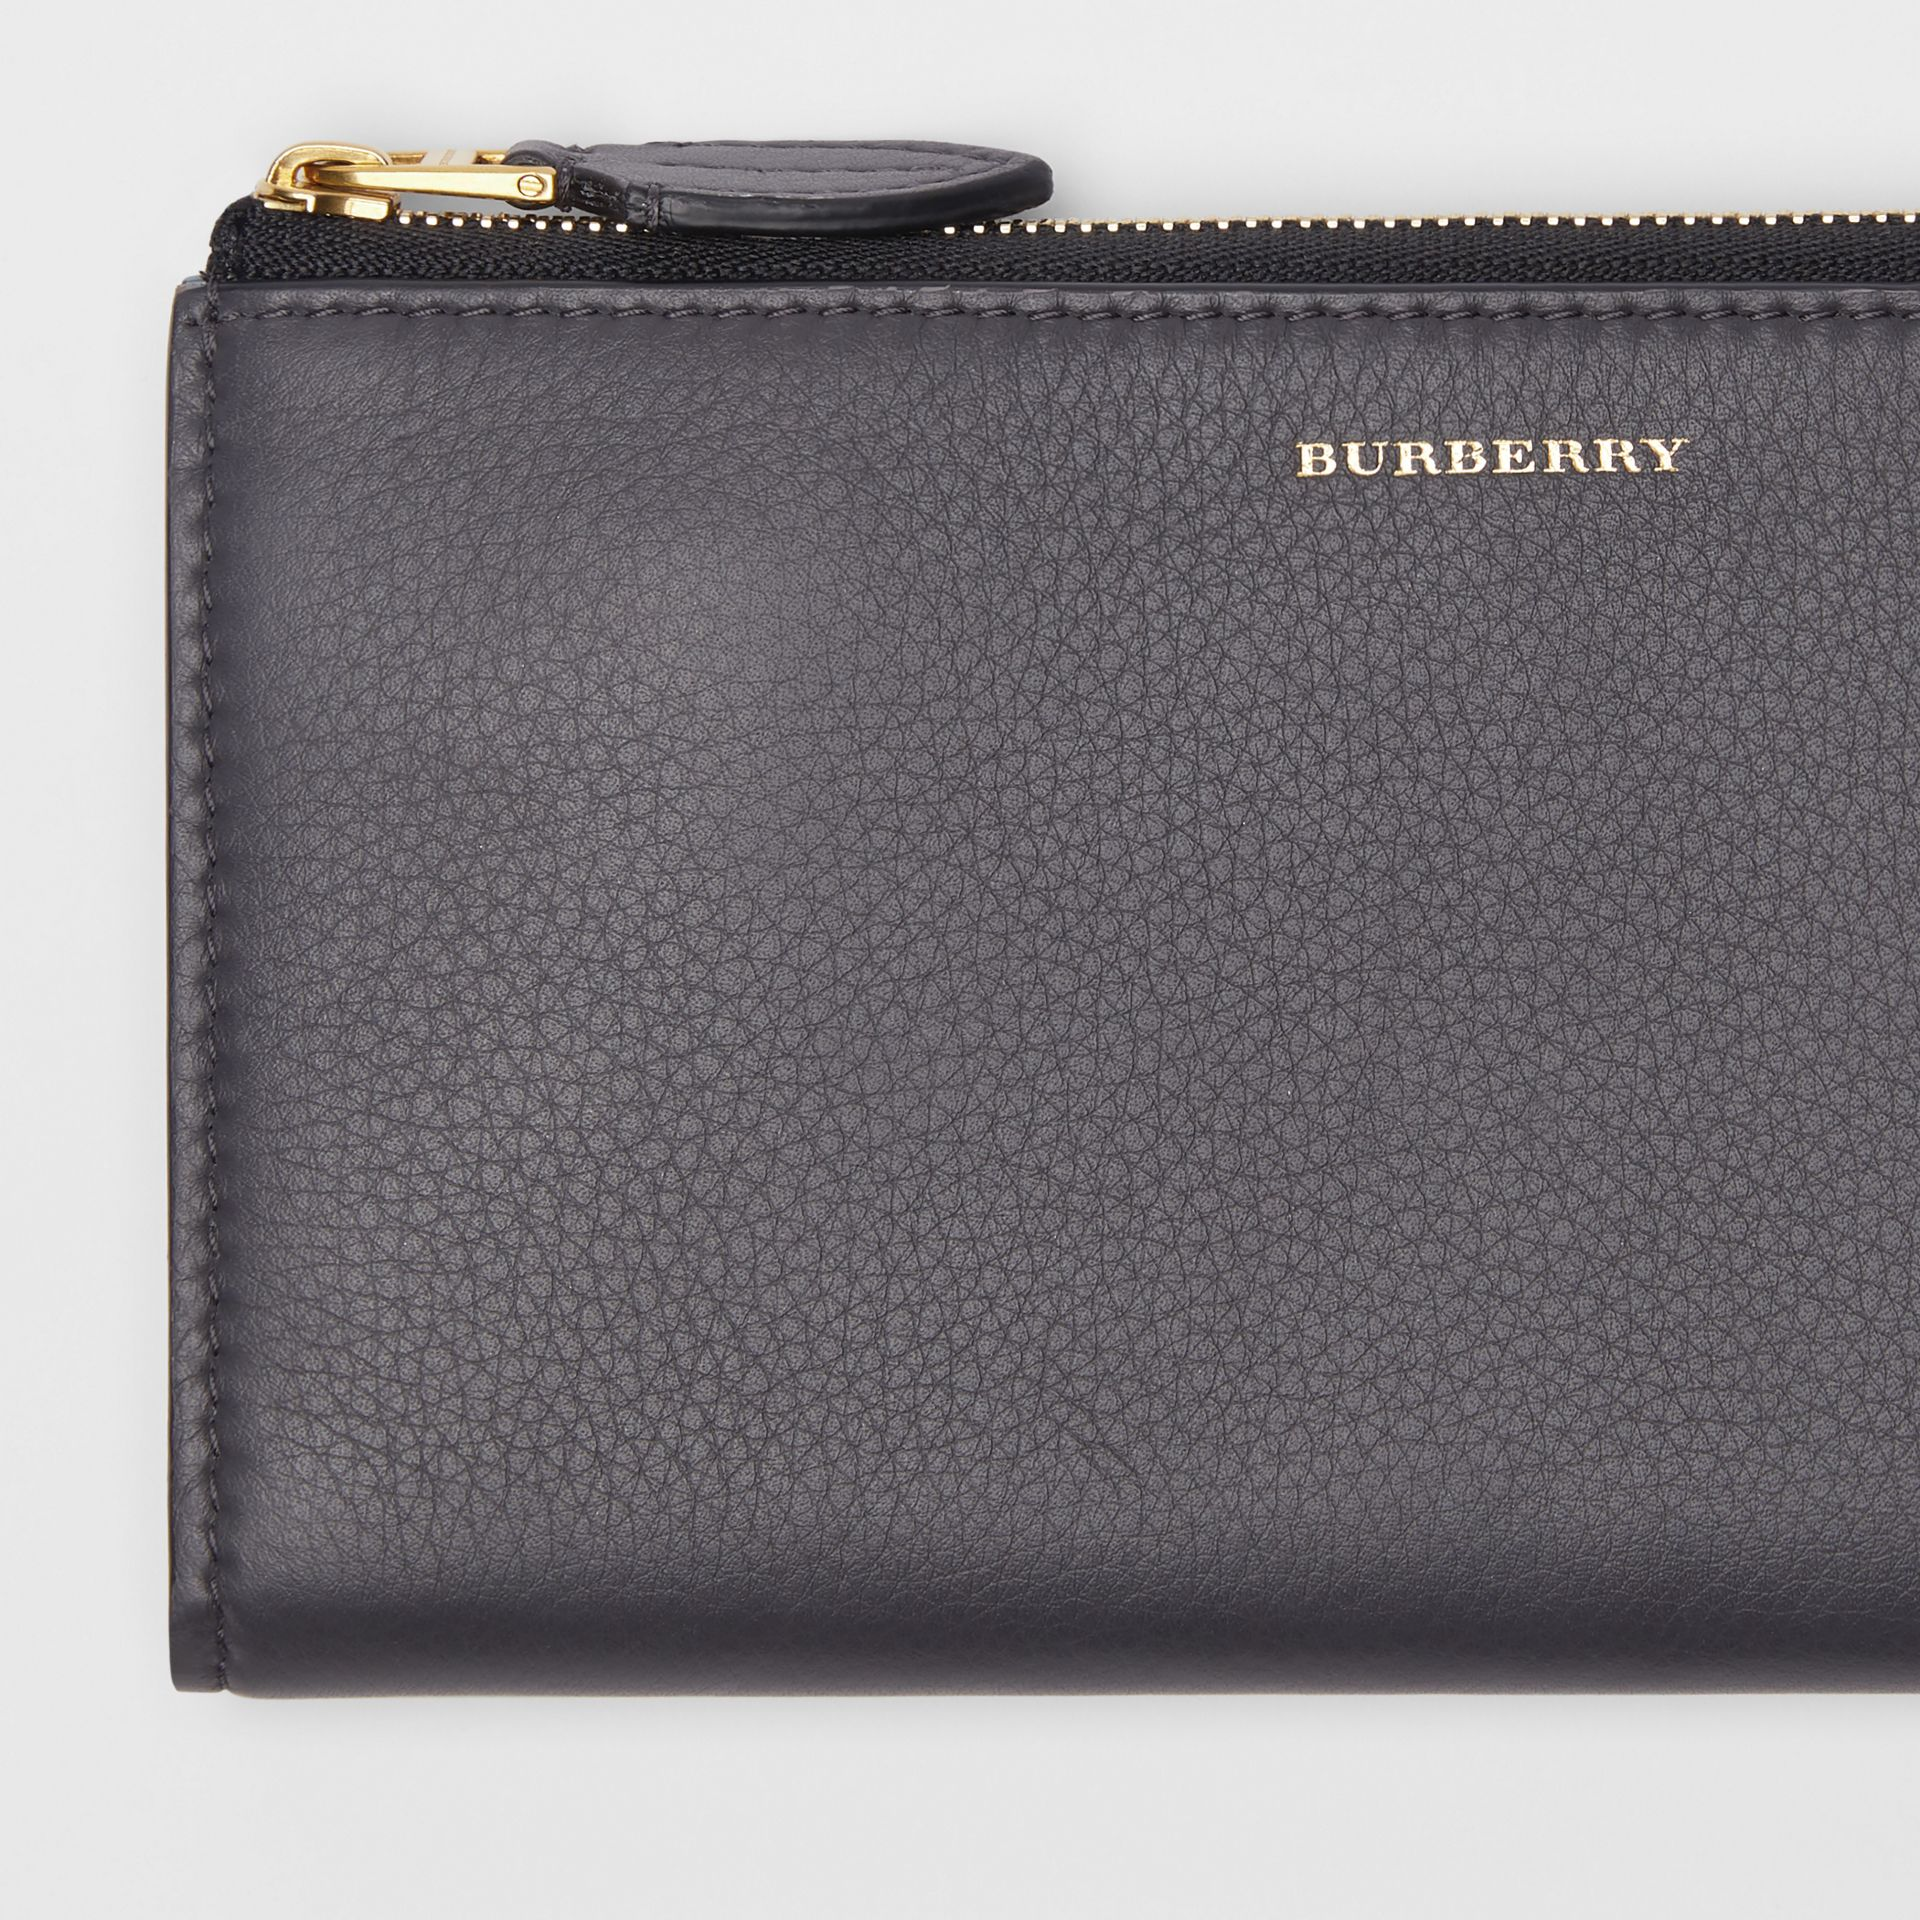 Two-tone Leather Ziparound Wallet and Coin Case in Charcoal Grey - Women | Burberry - gallery image 1